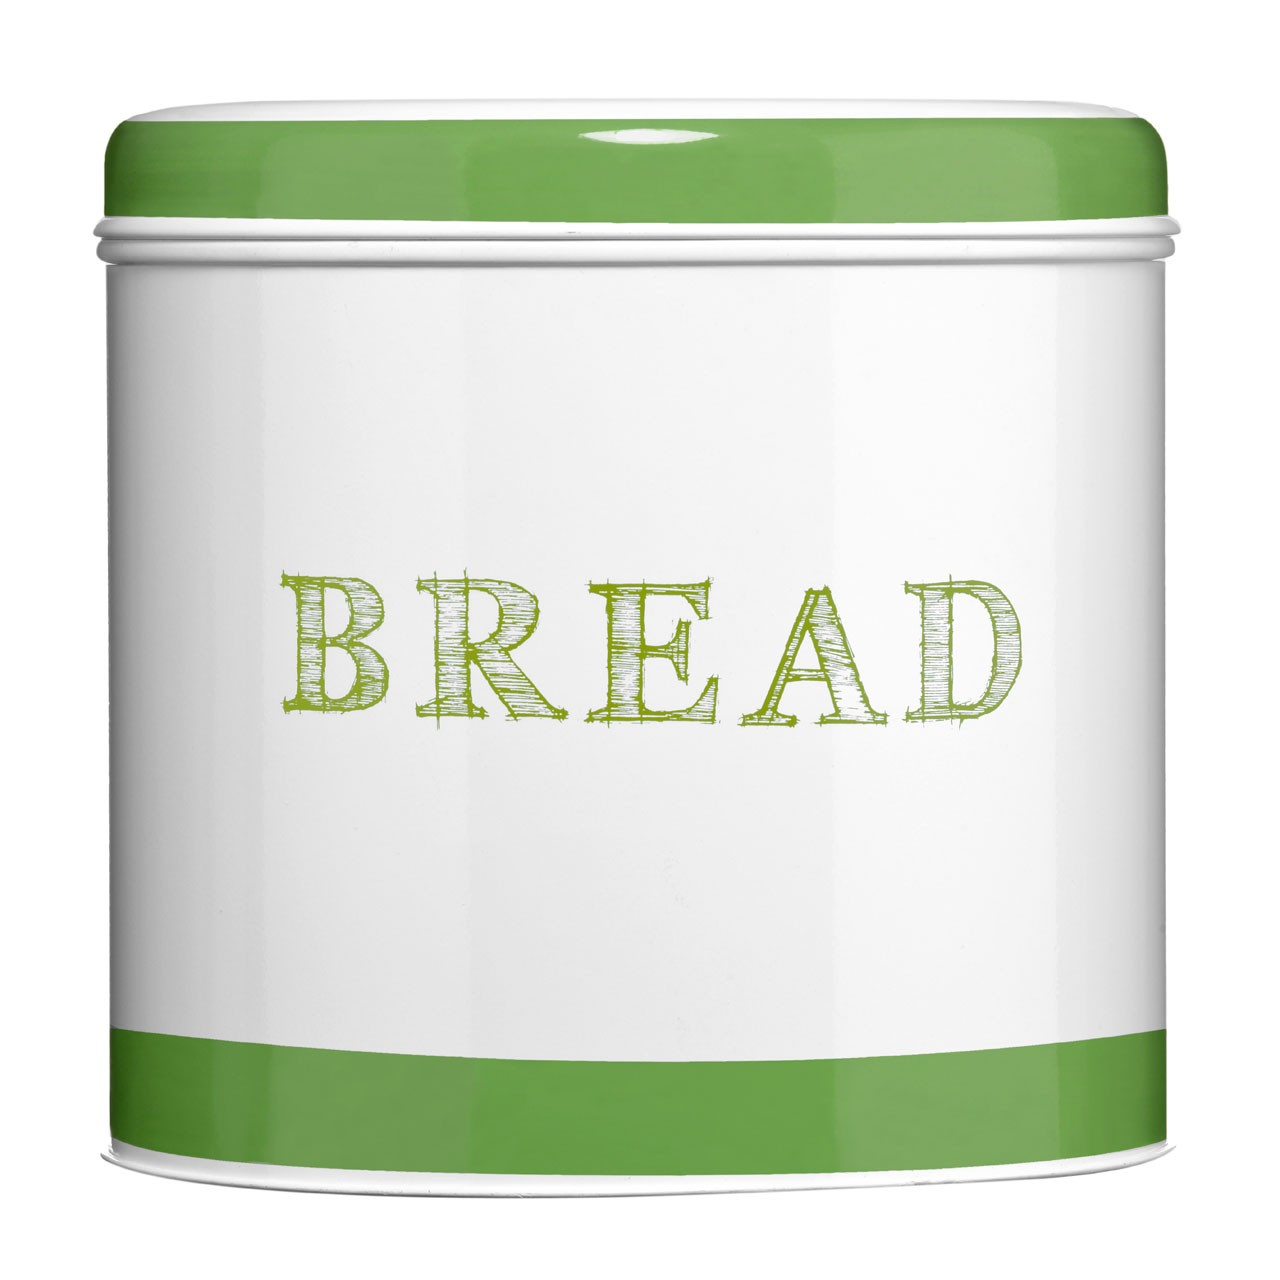 Band Bread Bin - Green